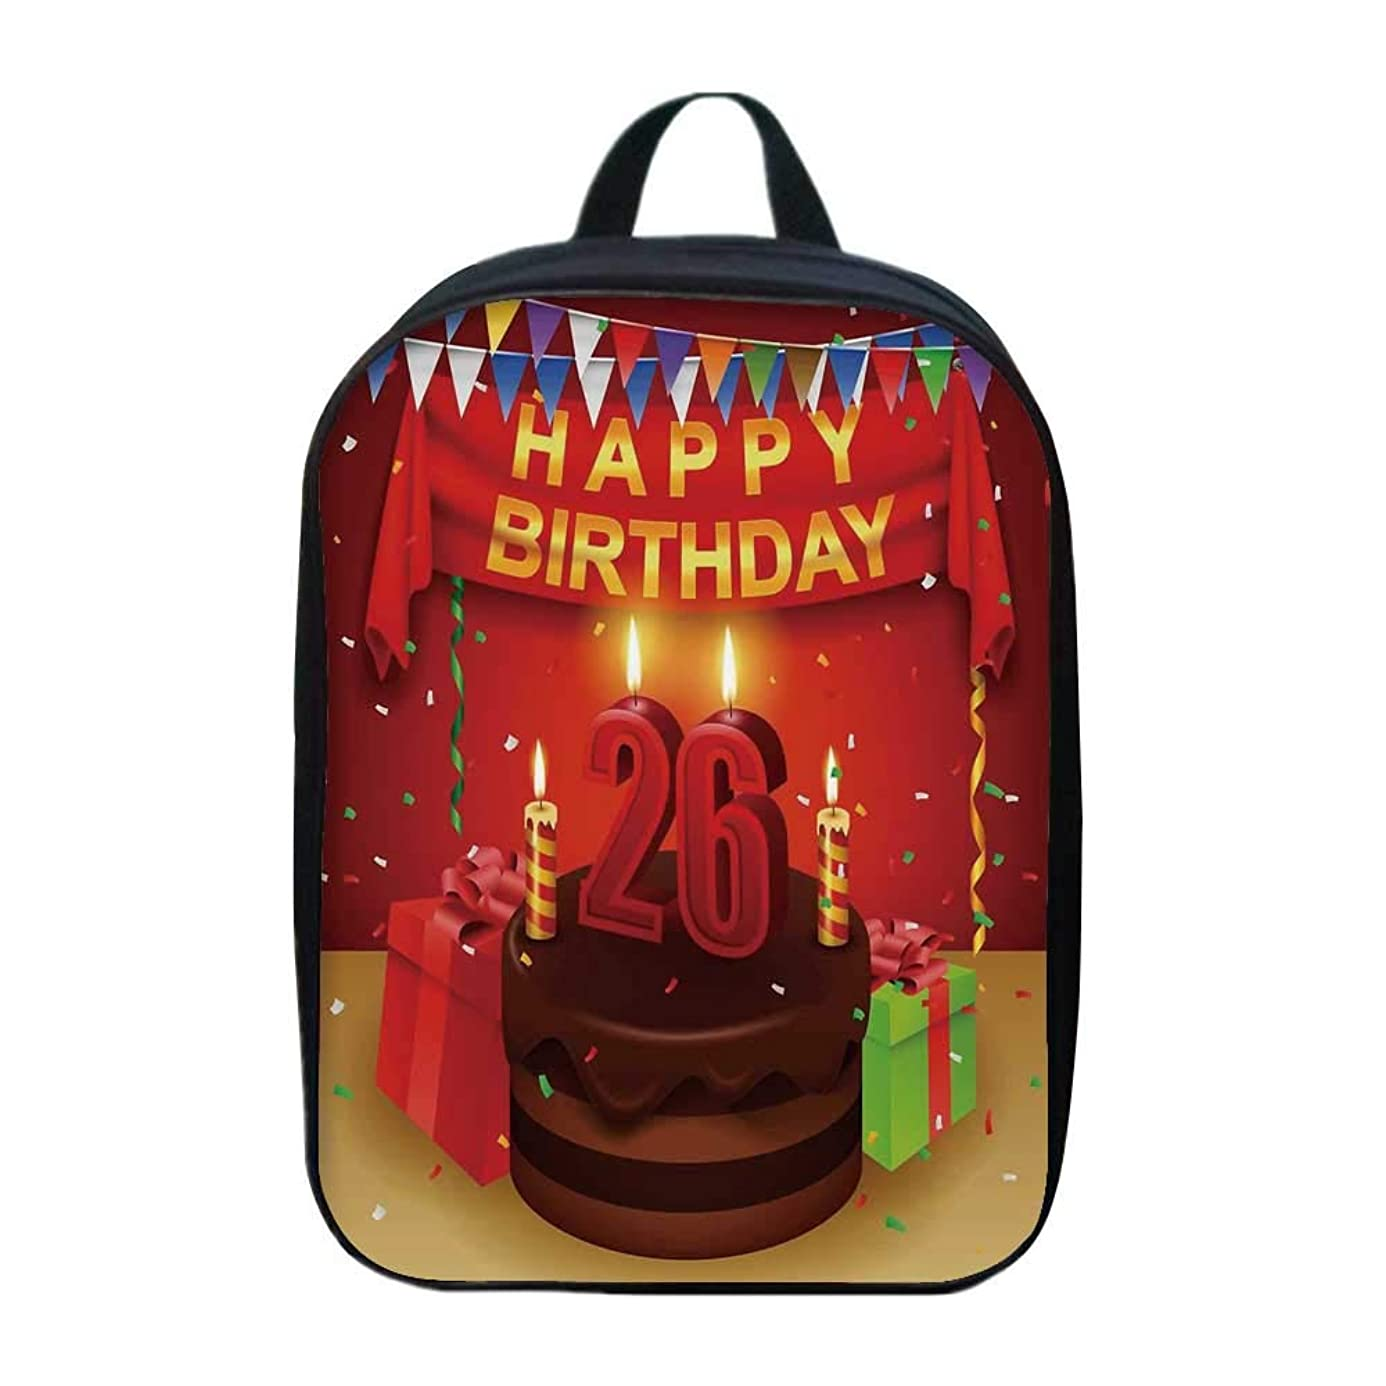 26th Birthday Decorations Stylish Mini Backpack,for School Travel,8.6